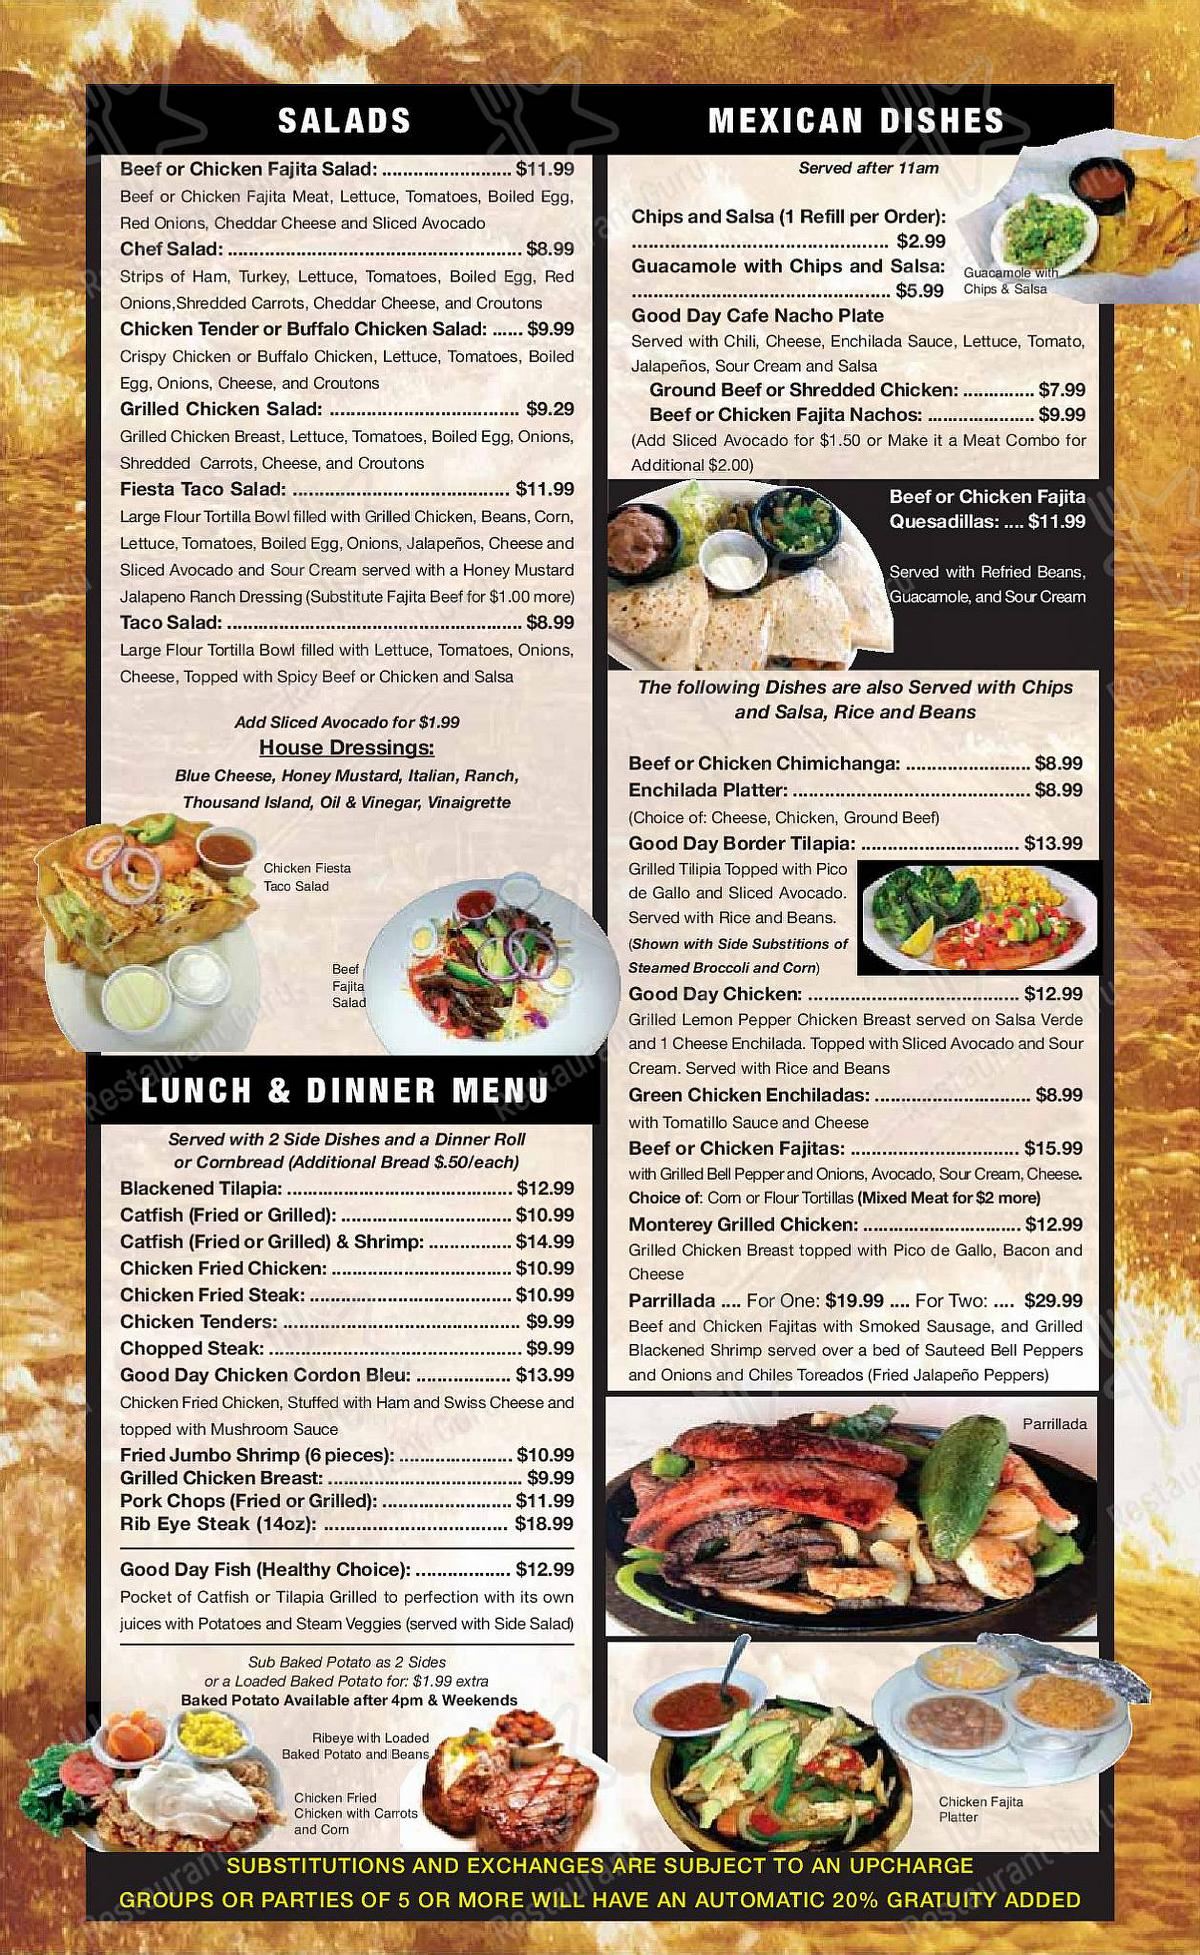 Good Day Cafe menu - meals and drinks